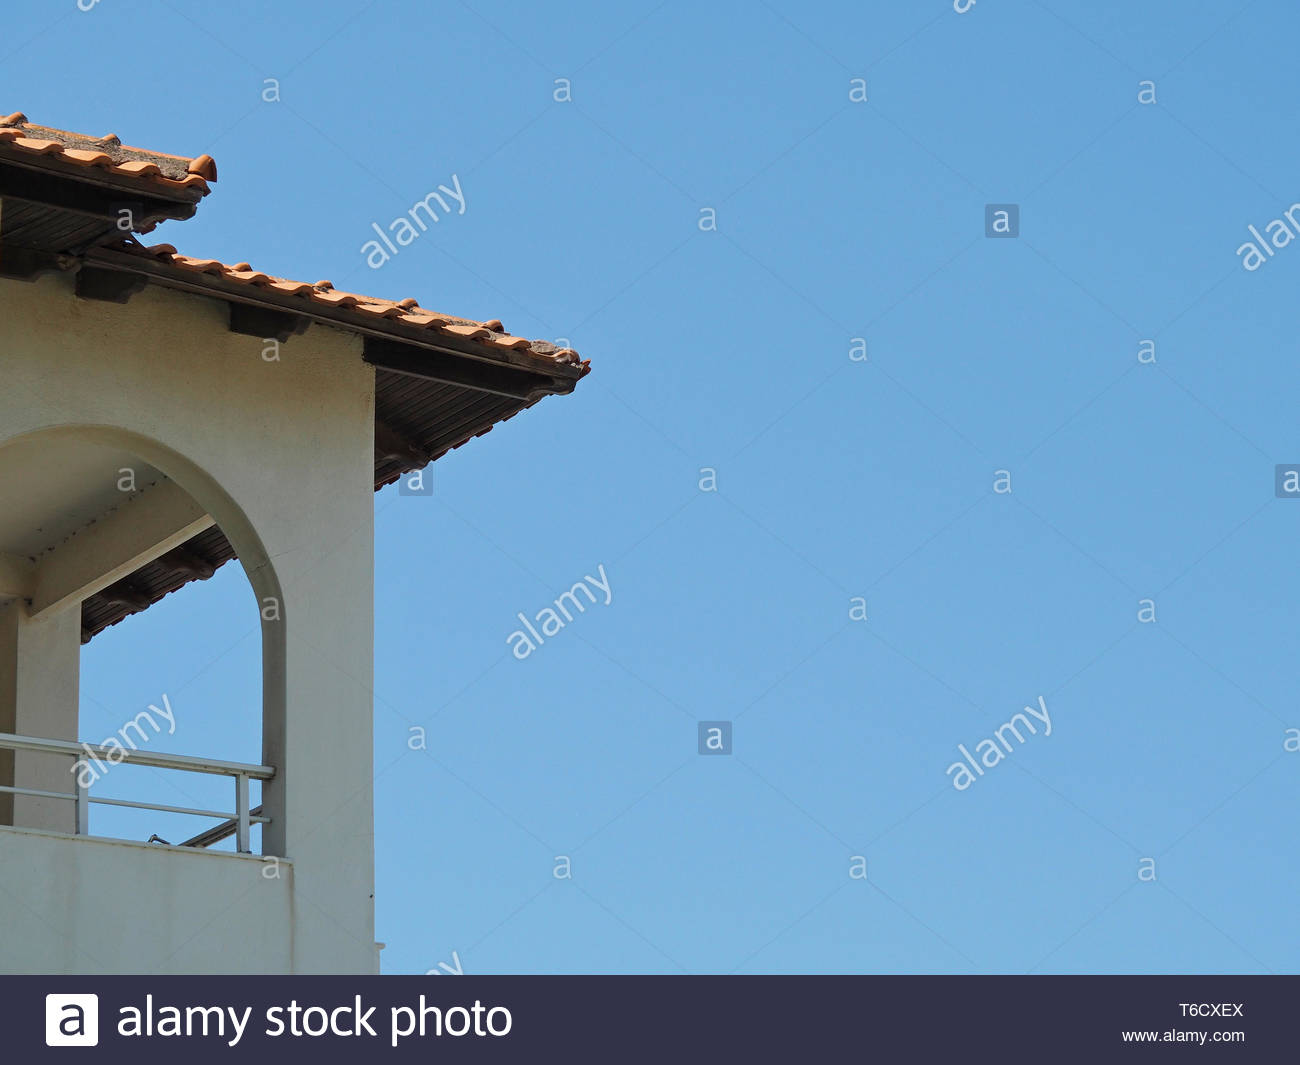 view of a rooftop - Stock Image